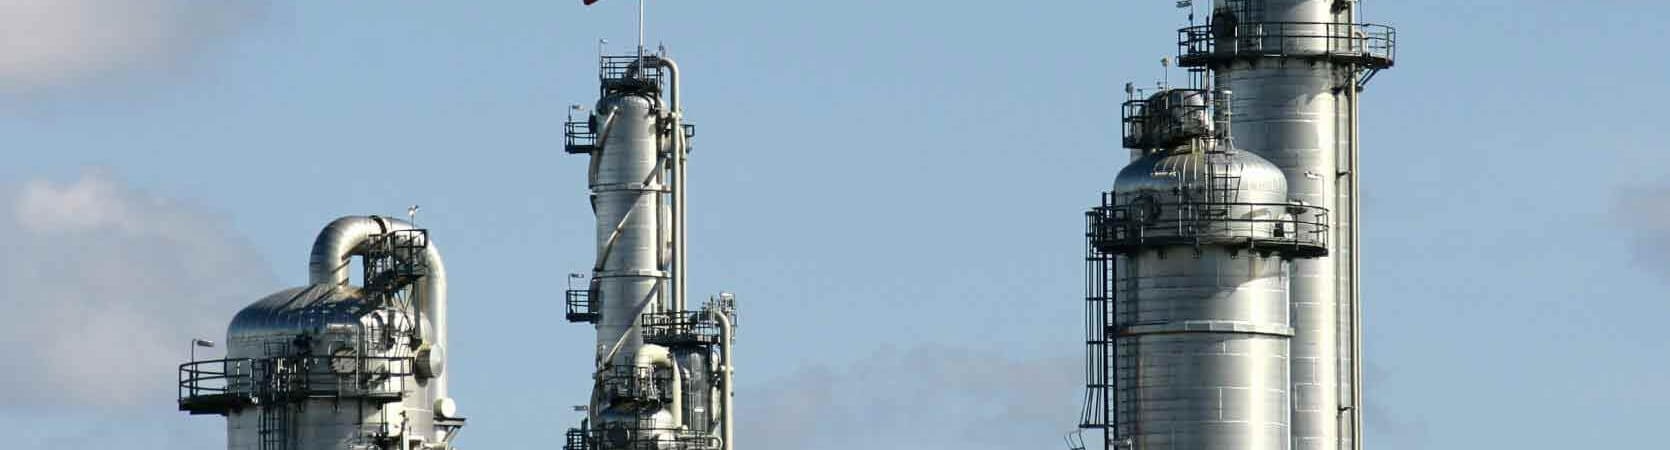 chemical plant construction and engineering